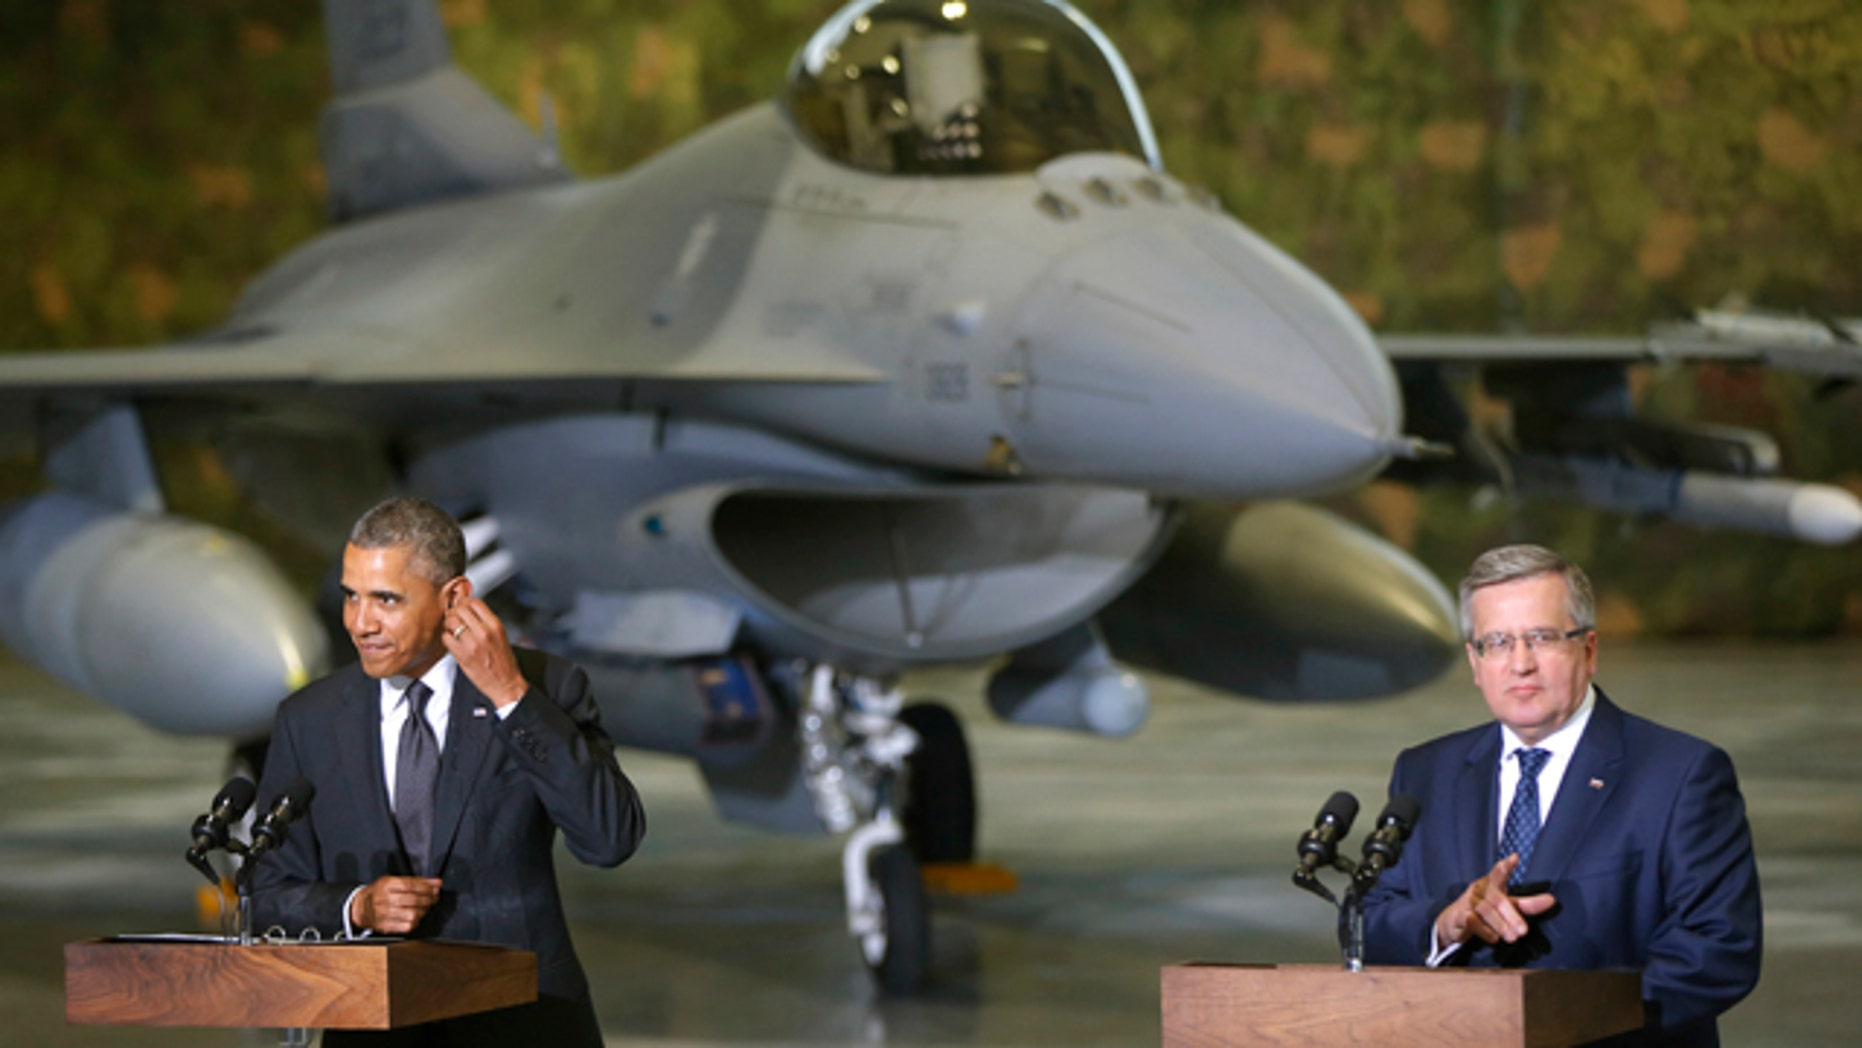 June 3, 2014: U.S. President Barack Obama and Poland's President Bronislaw Komorowski make statements and meet with U.S. and Polish troops at an event featuring four F-16 fighter jets, two American and two Polish, as part of multinational military exercises, in Warsaw. (AP Photo/Charles Dharapak)